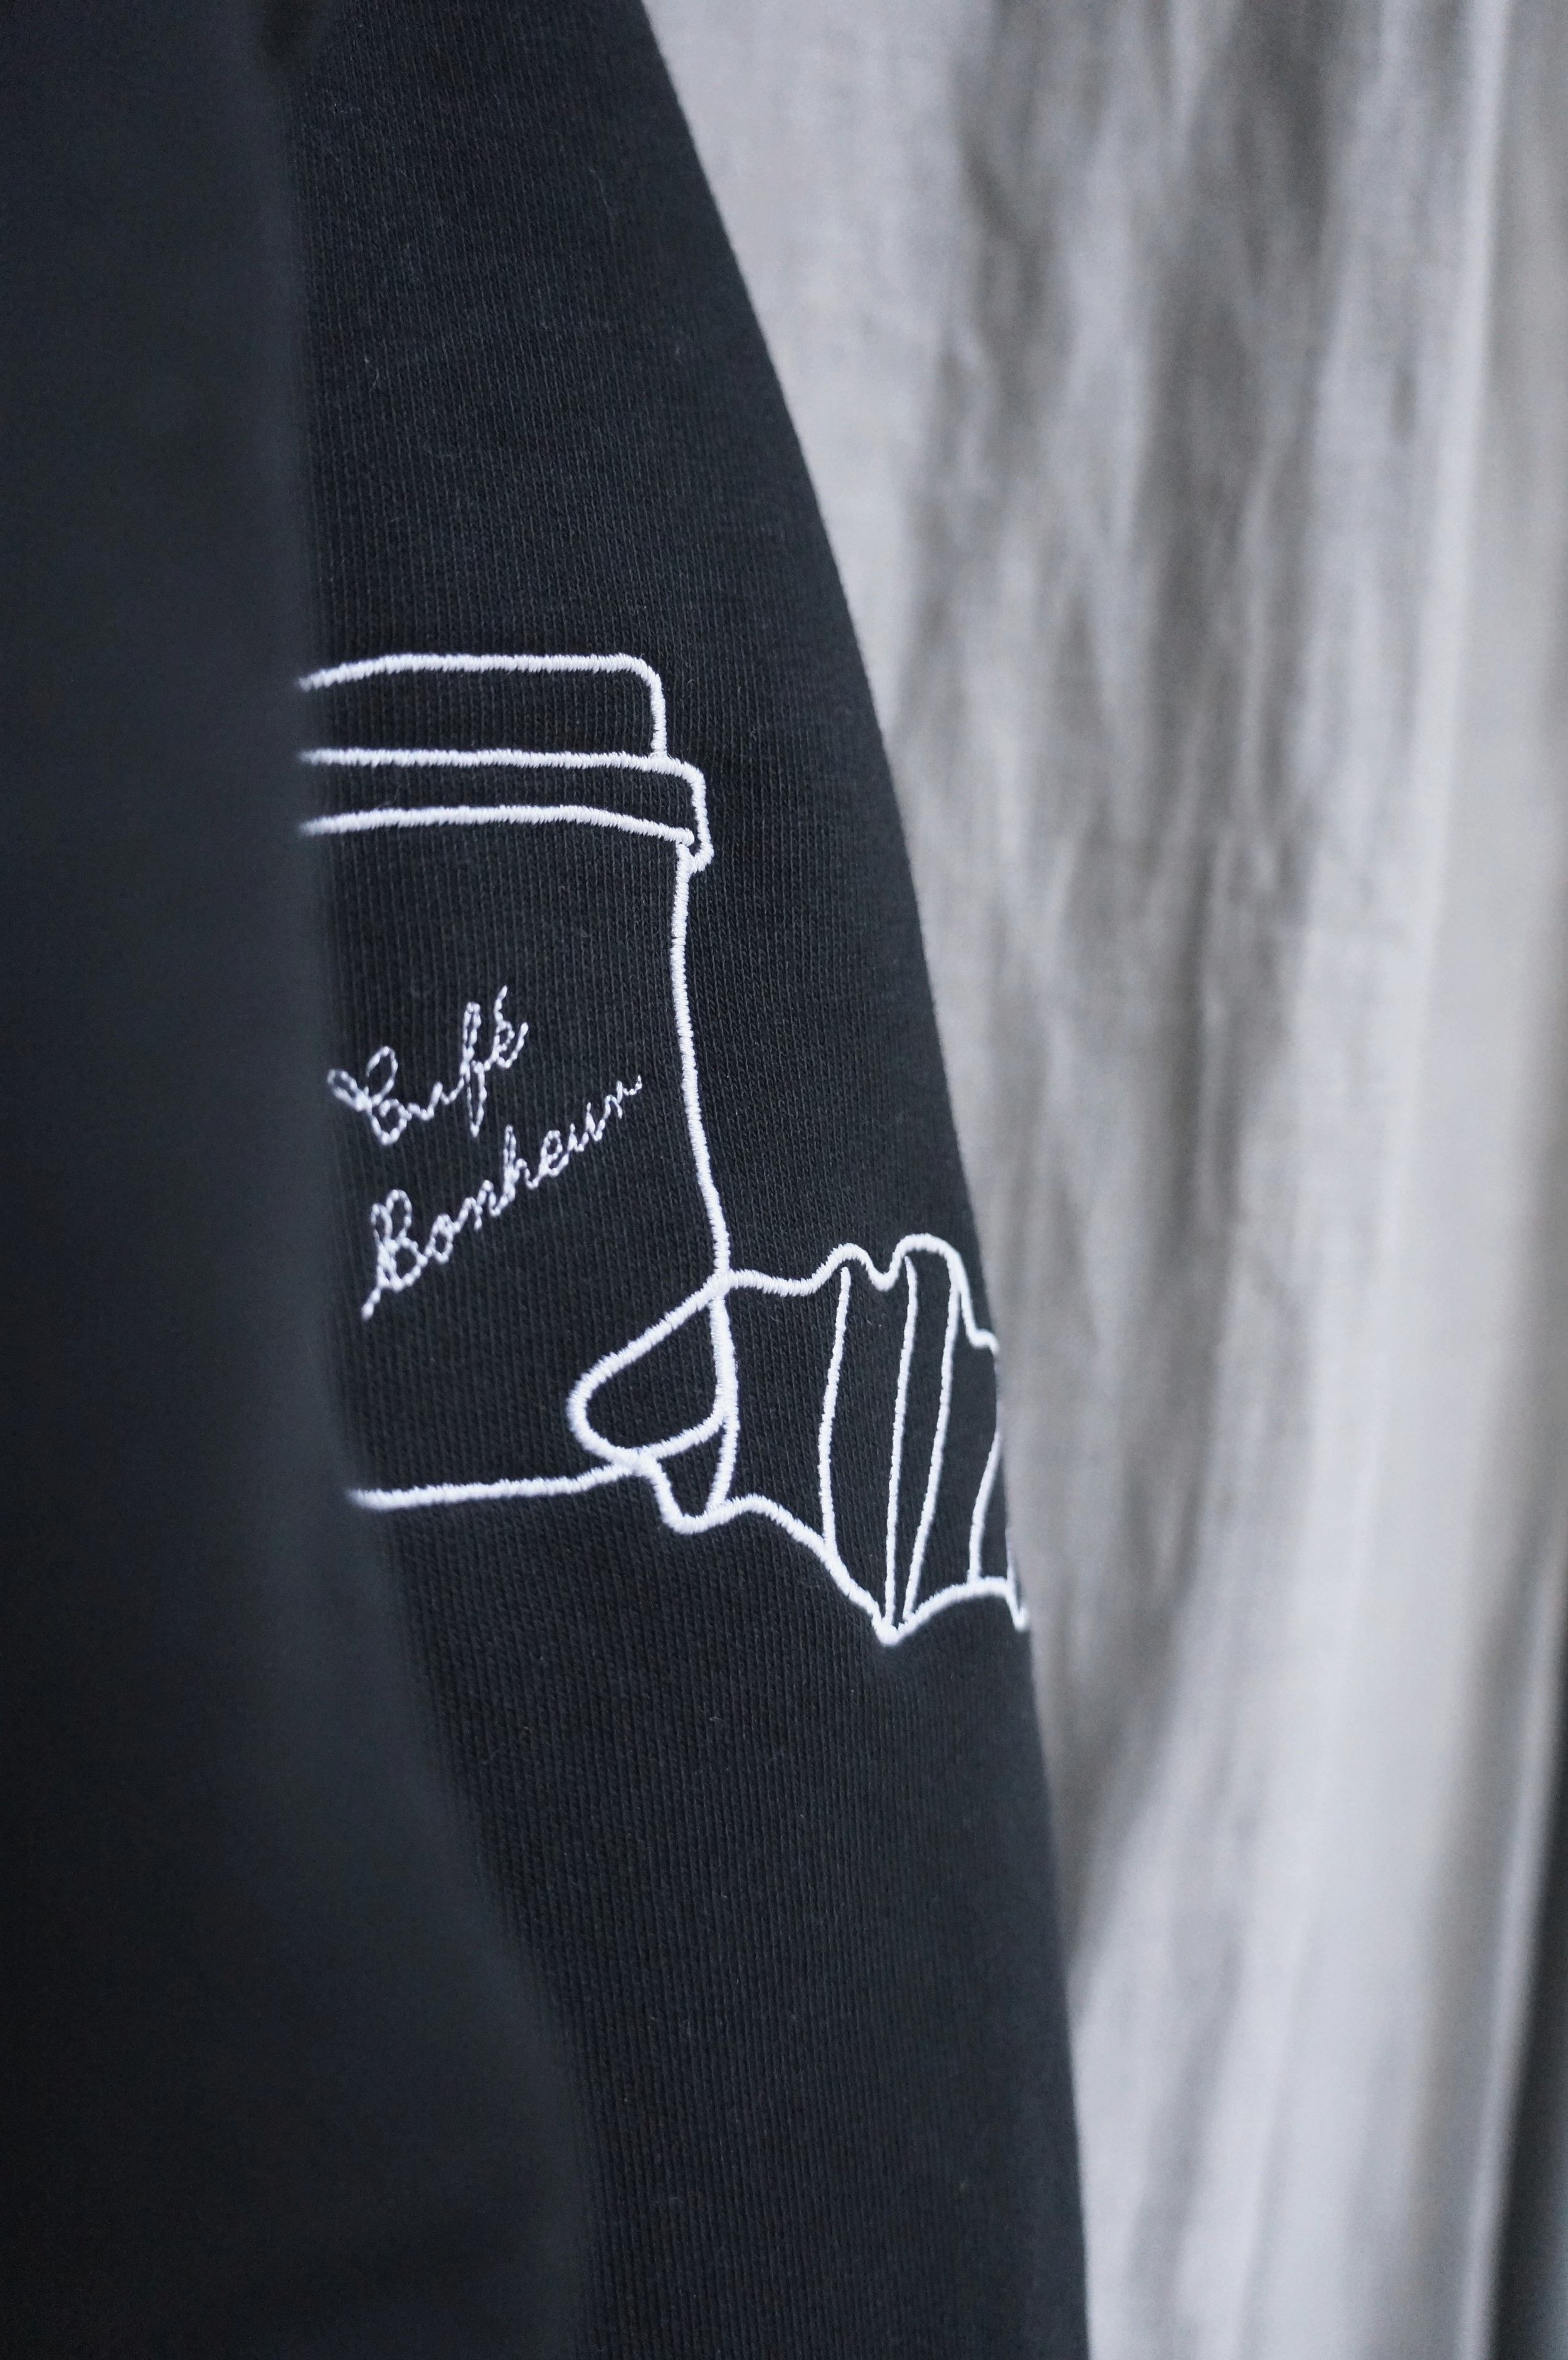 It's here! - It's a sweatshirtIt's embroideredIt's deliciousIt's unisexIt's sustainableDiscover the Café & Croissant design you loveso much on a sweatshirt!